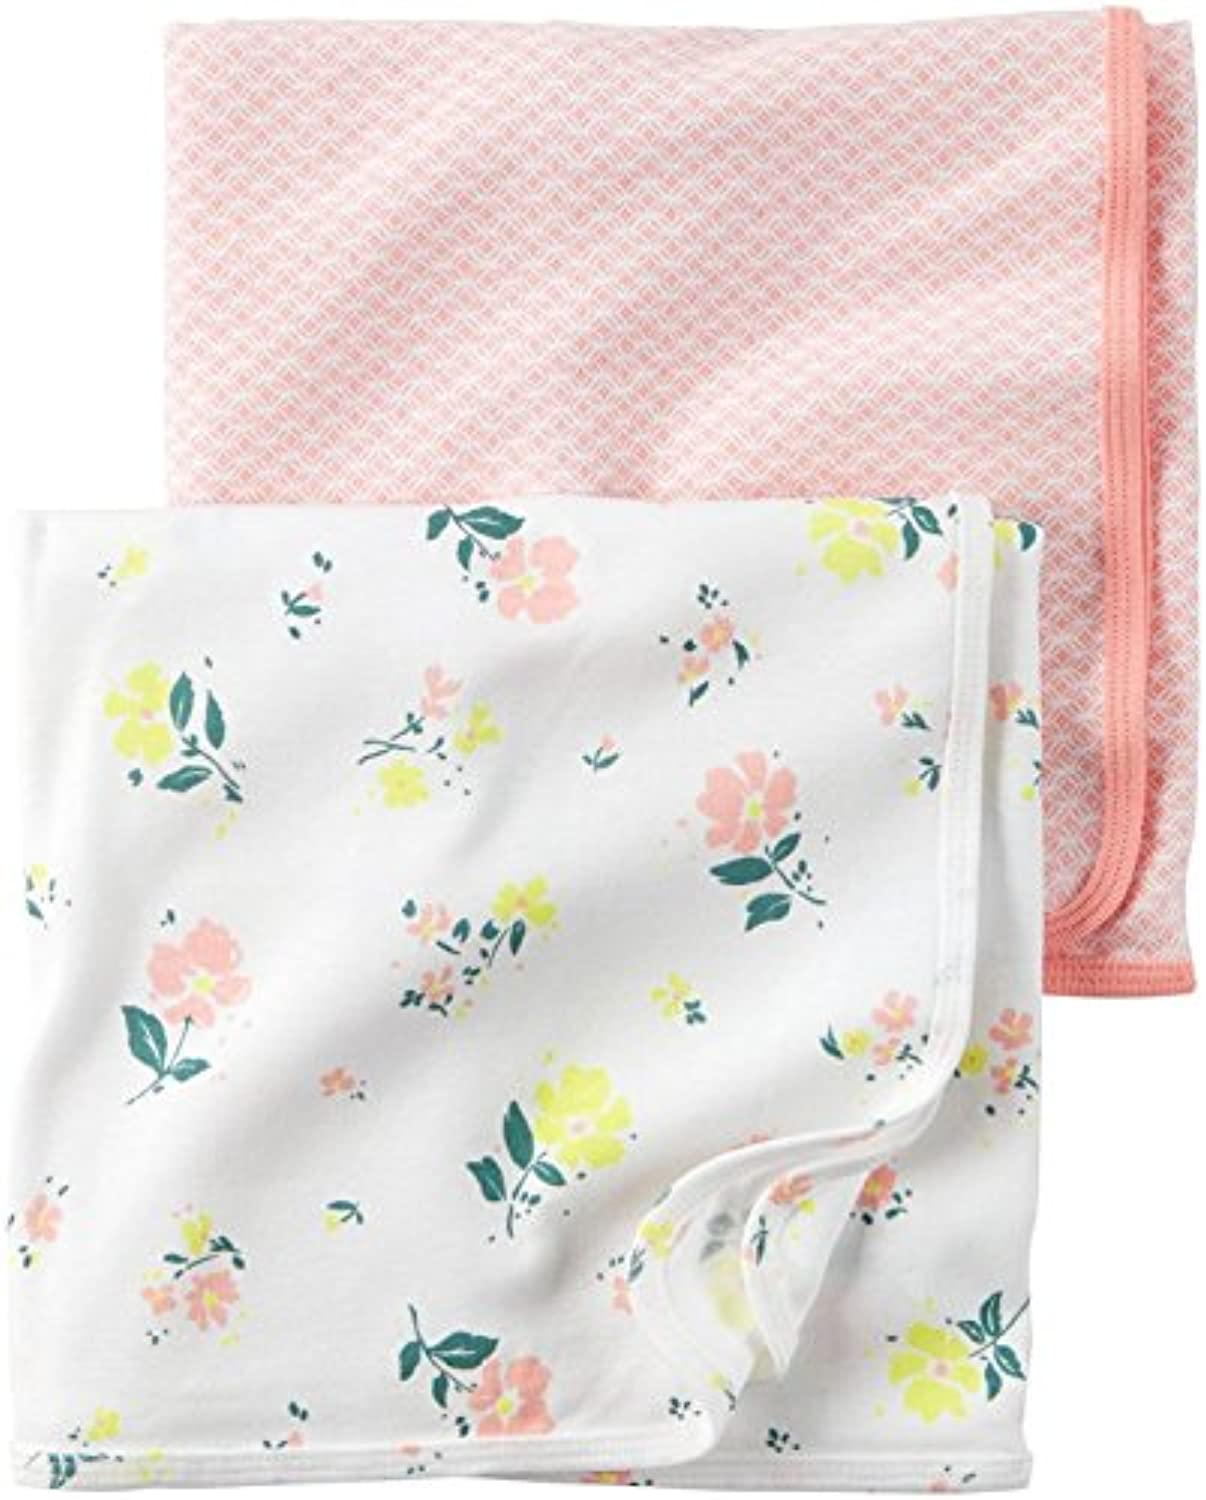 Carter's Baby Girl Swaddle Blankets - 2 pk - Floral/Pink - Newborn-24 Months by Carter's